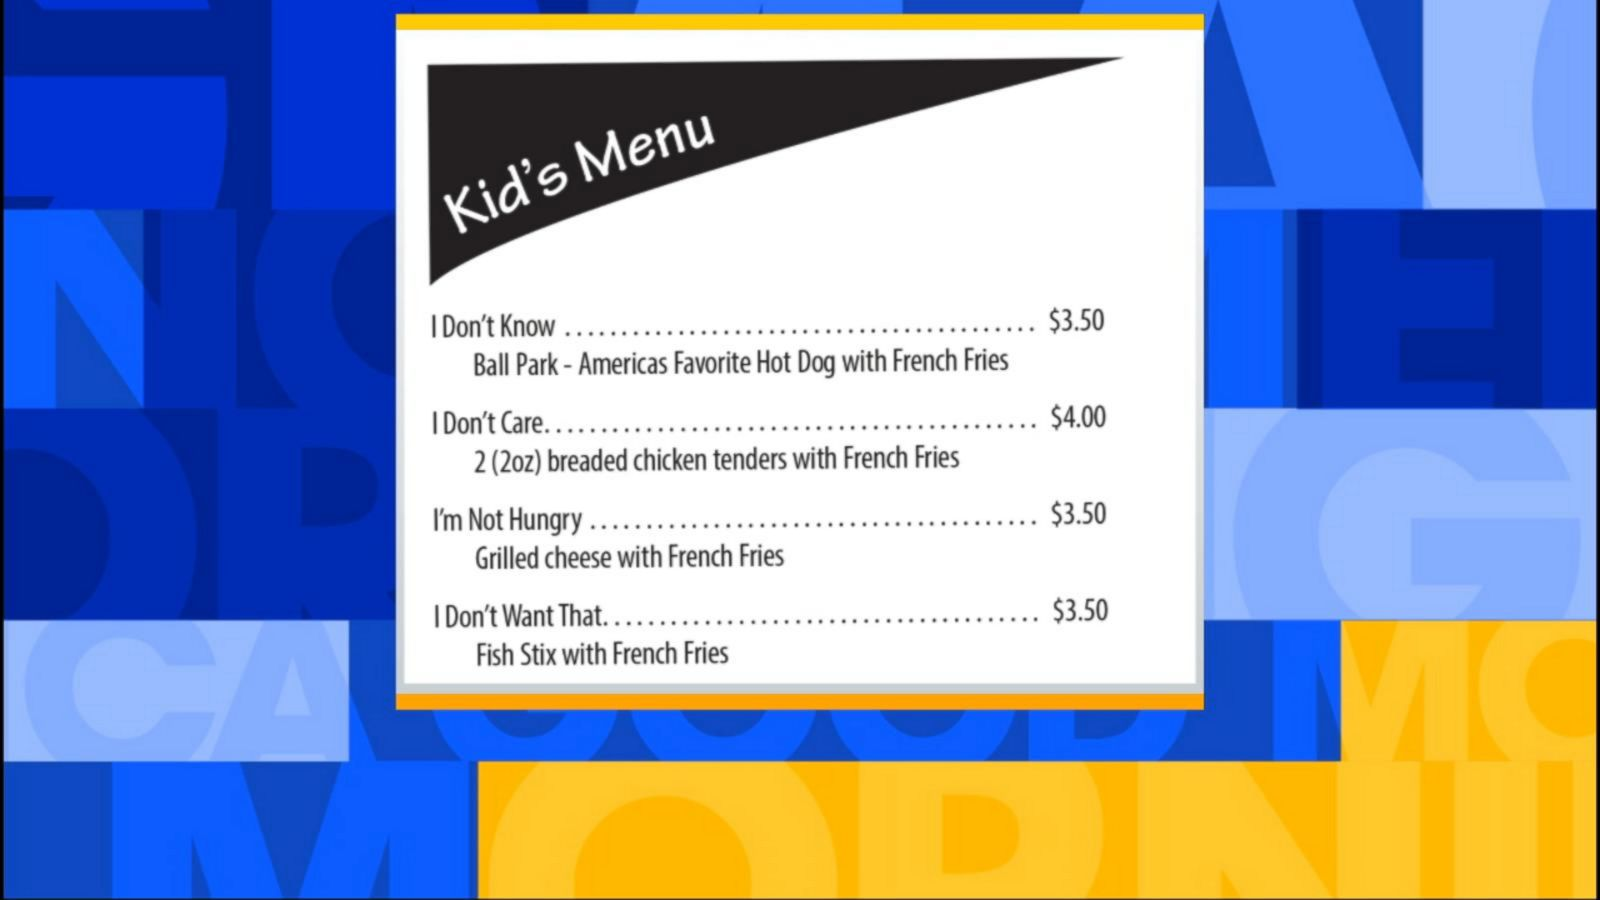 VIDEO: Deli Menu Perfectly Sums Up Pain of Parents Dining With Kids